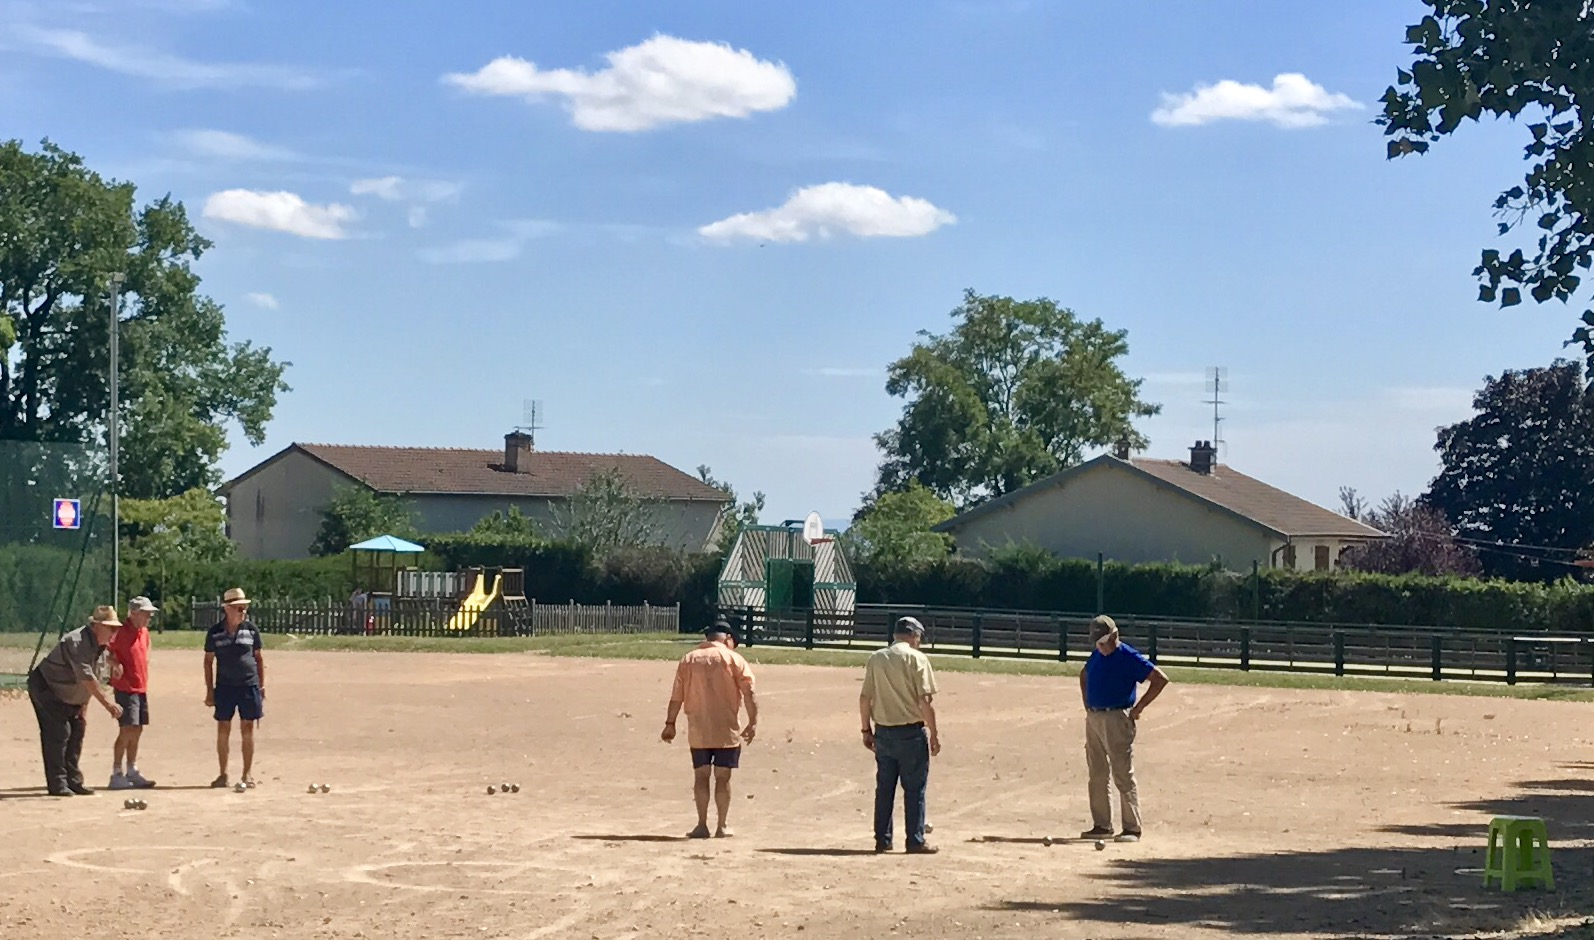 Scenes from our drive through the villages...A midday boules game in action